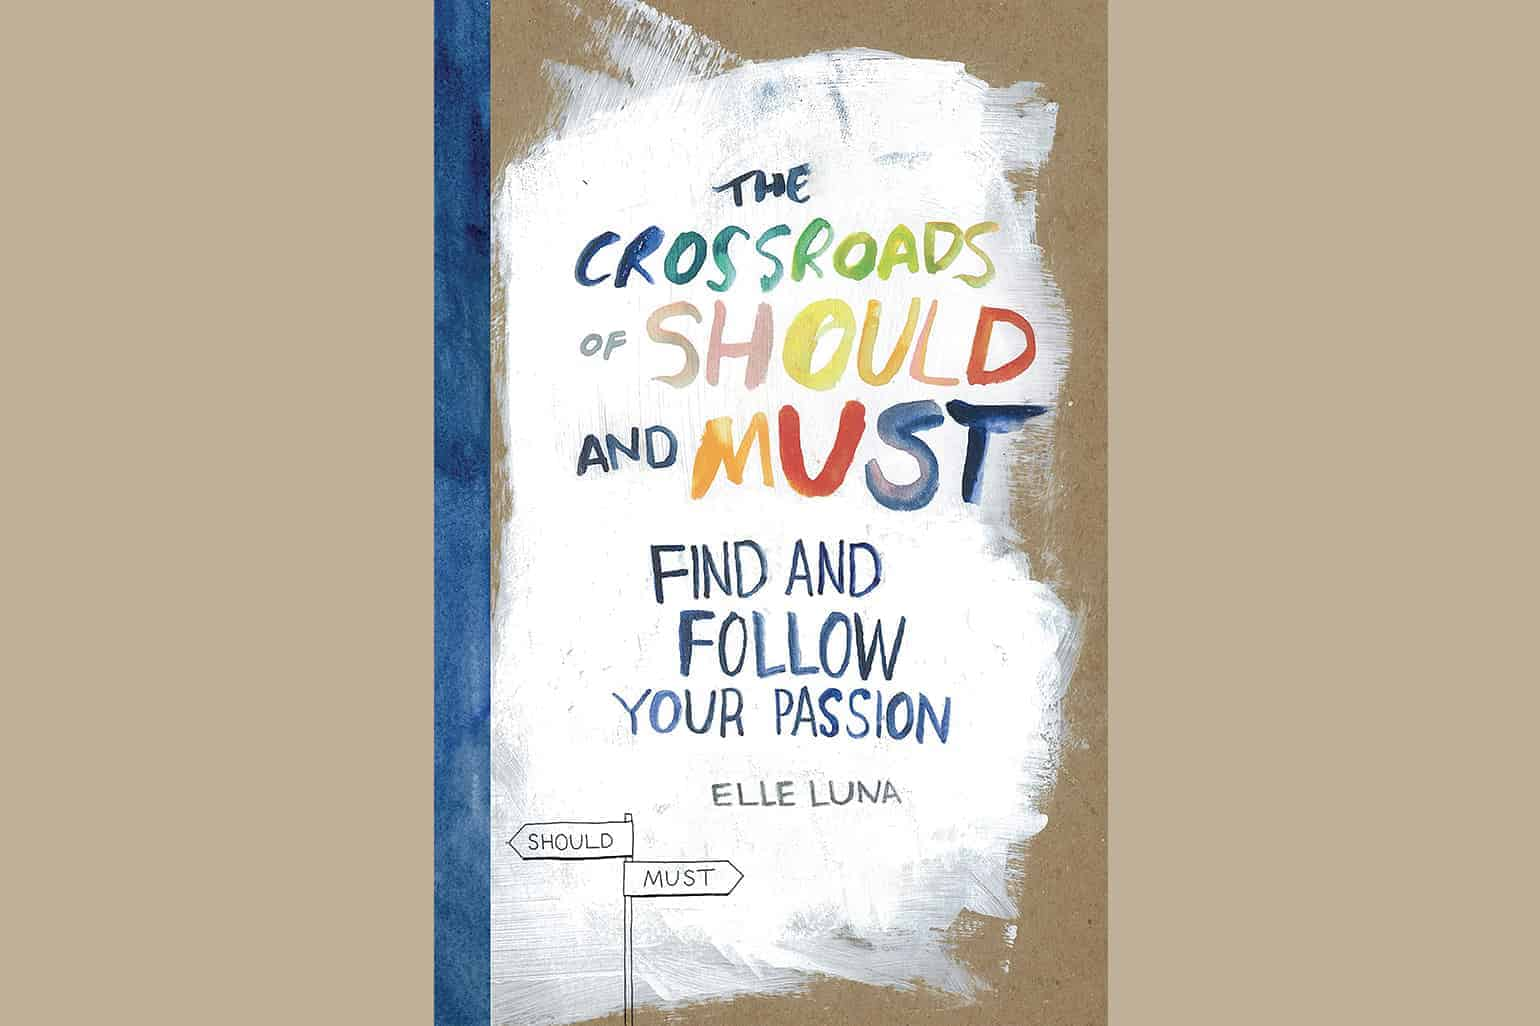 The Crossroads Of Should And Must Find And Follow Your Passion By Elle Luna